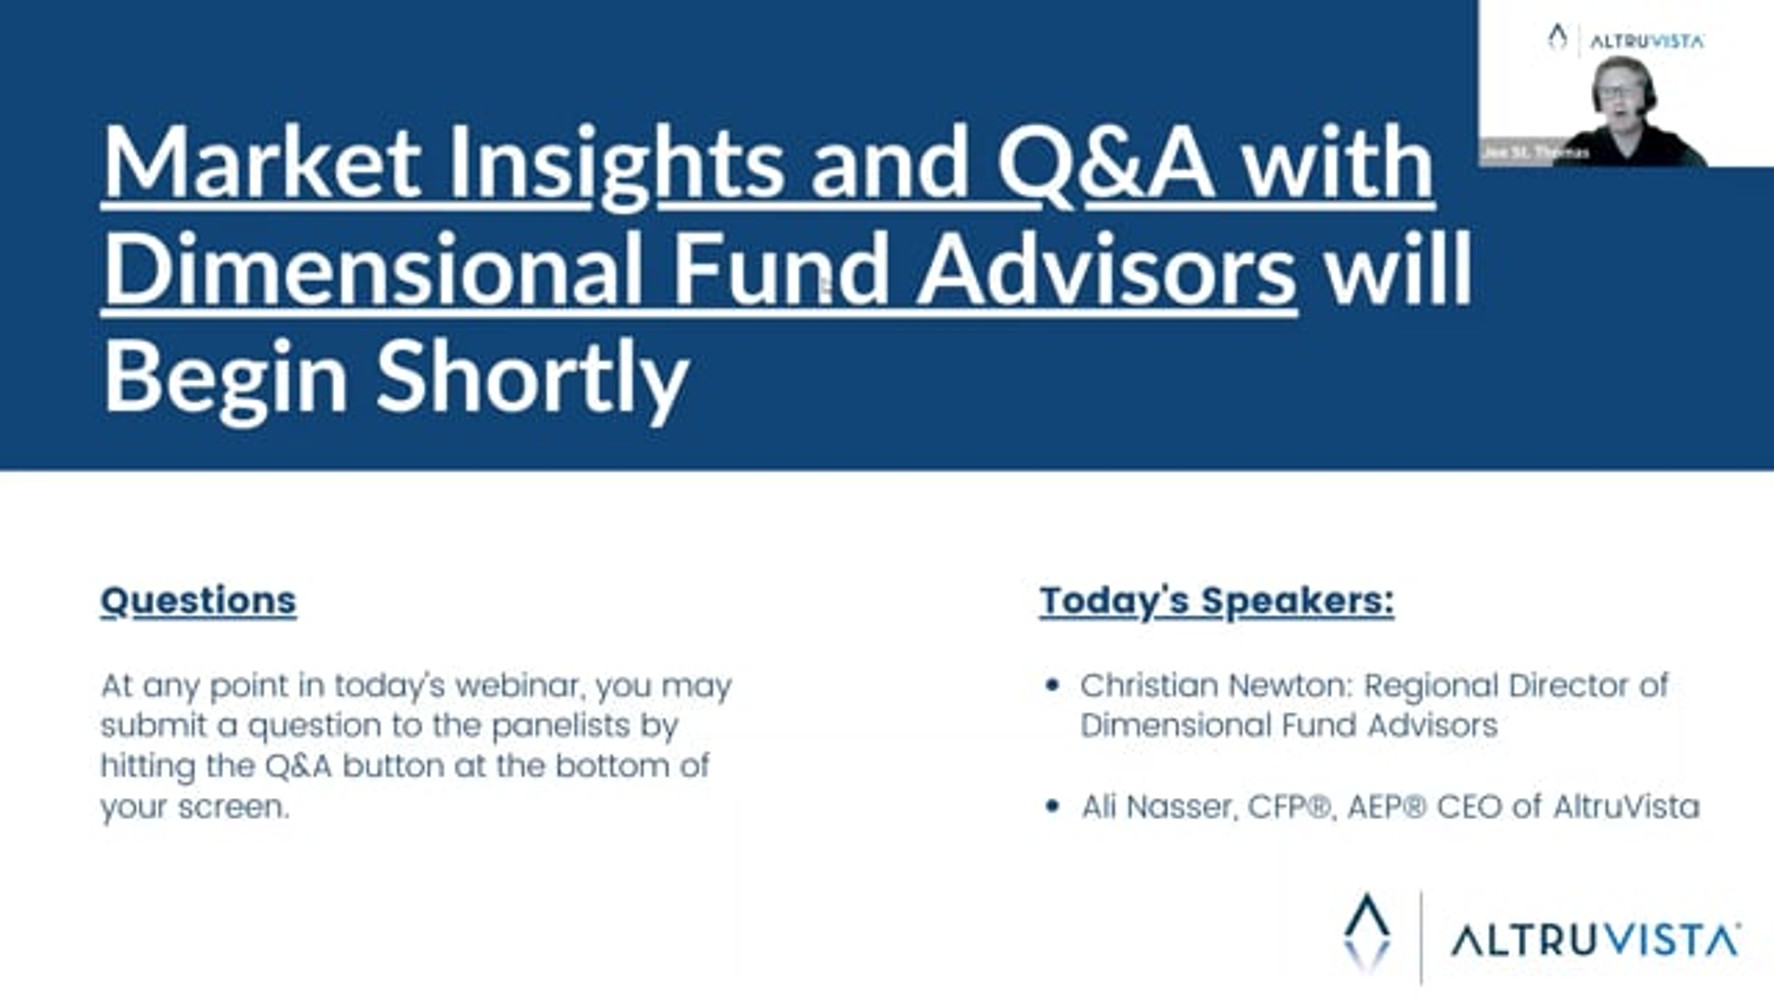 Market Insights and Q&A with Dimensional Fund Advisors